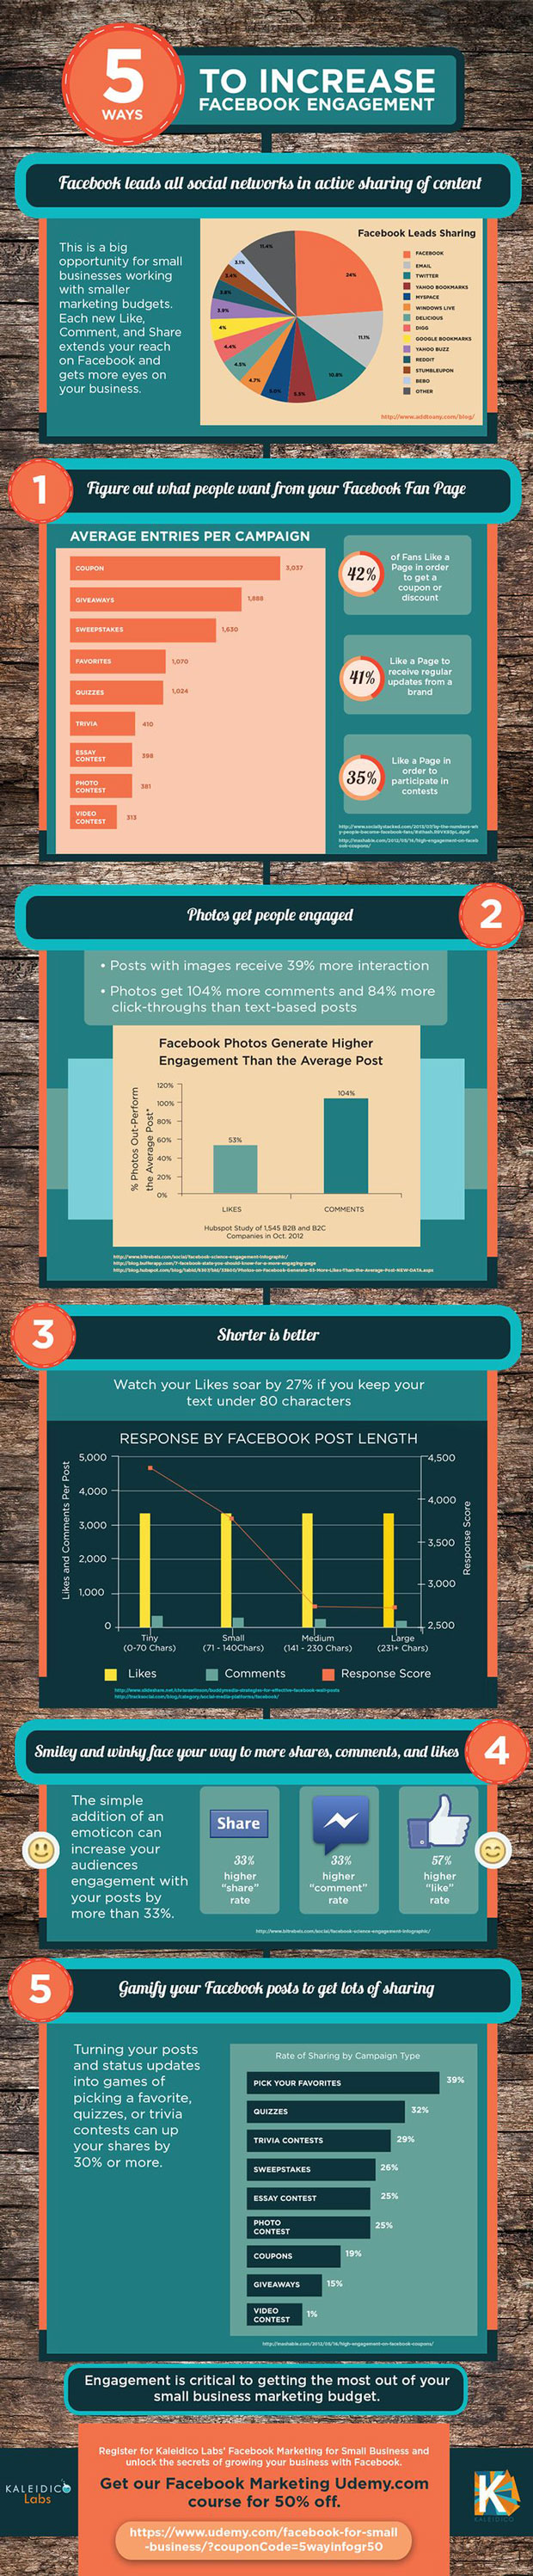 5 Ways to Increase Facebook Engagement: Infographic